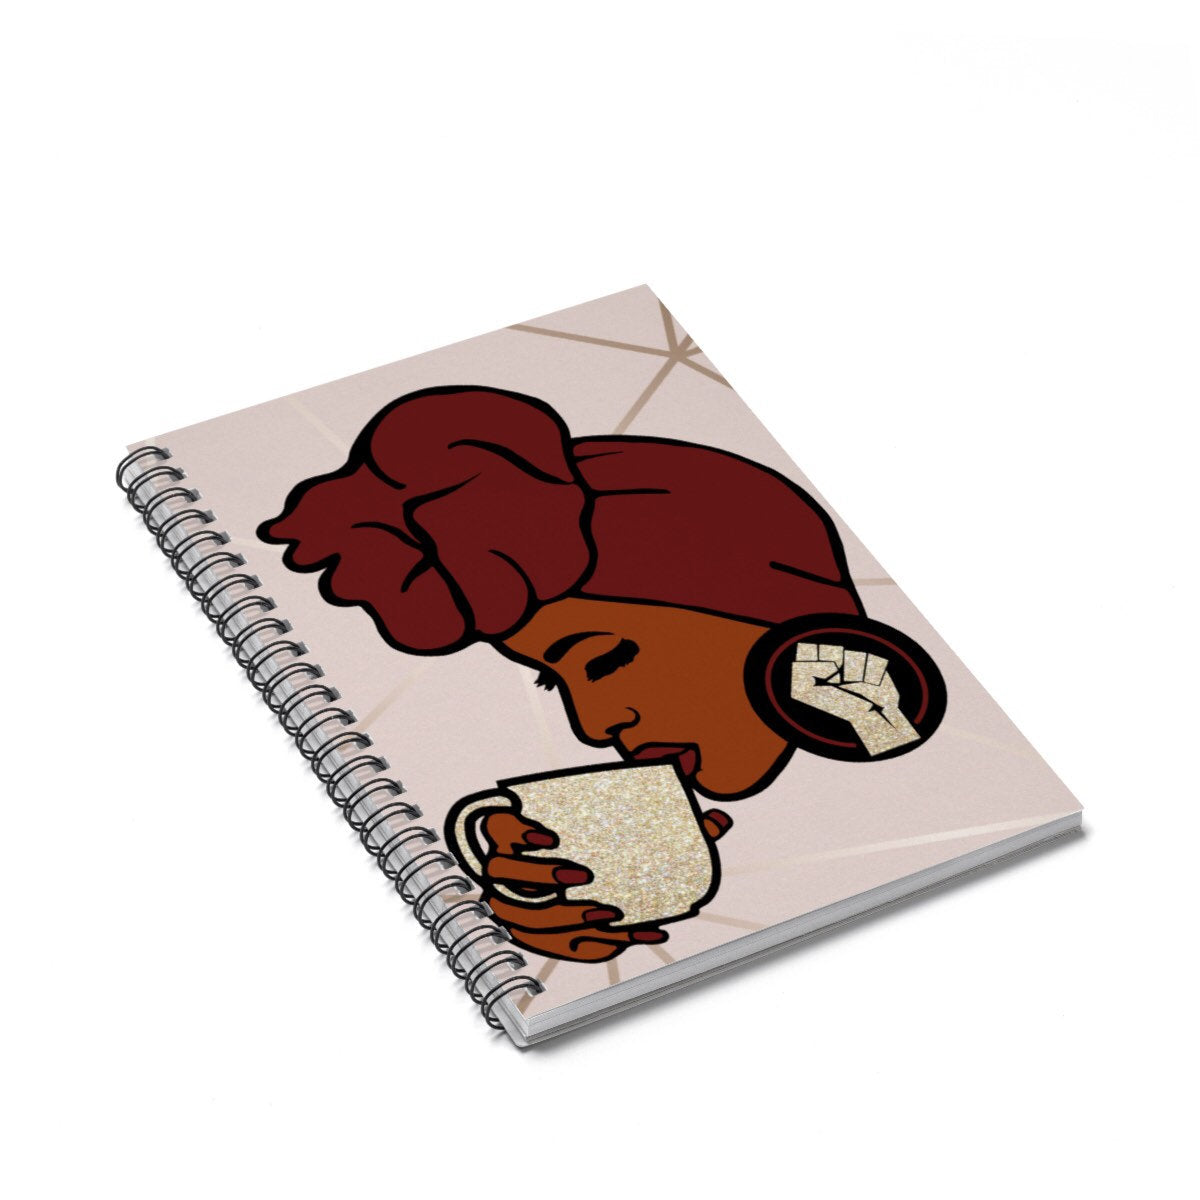 Black Queen With Head Wrap Journal